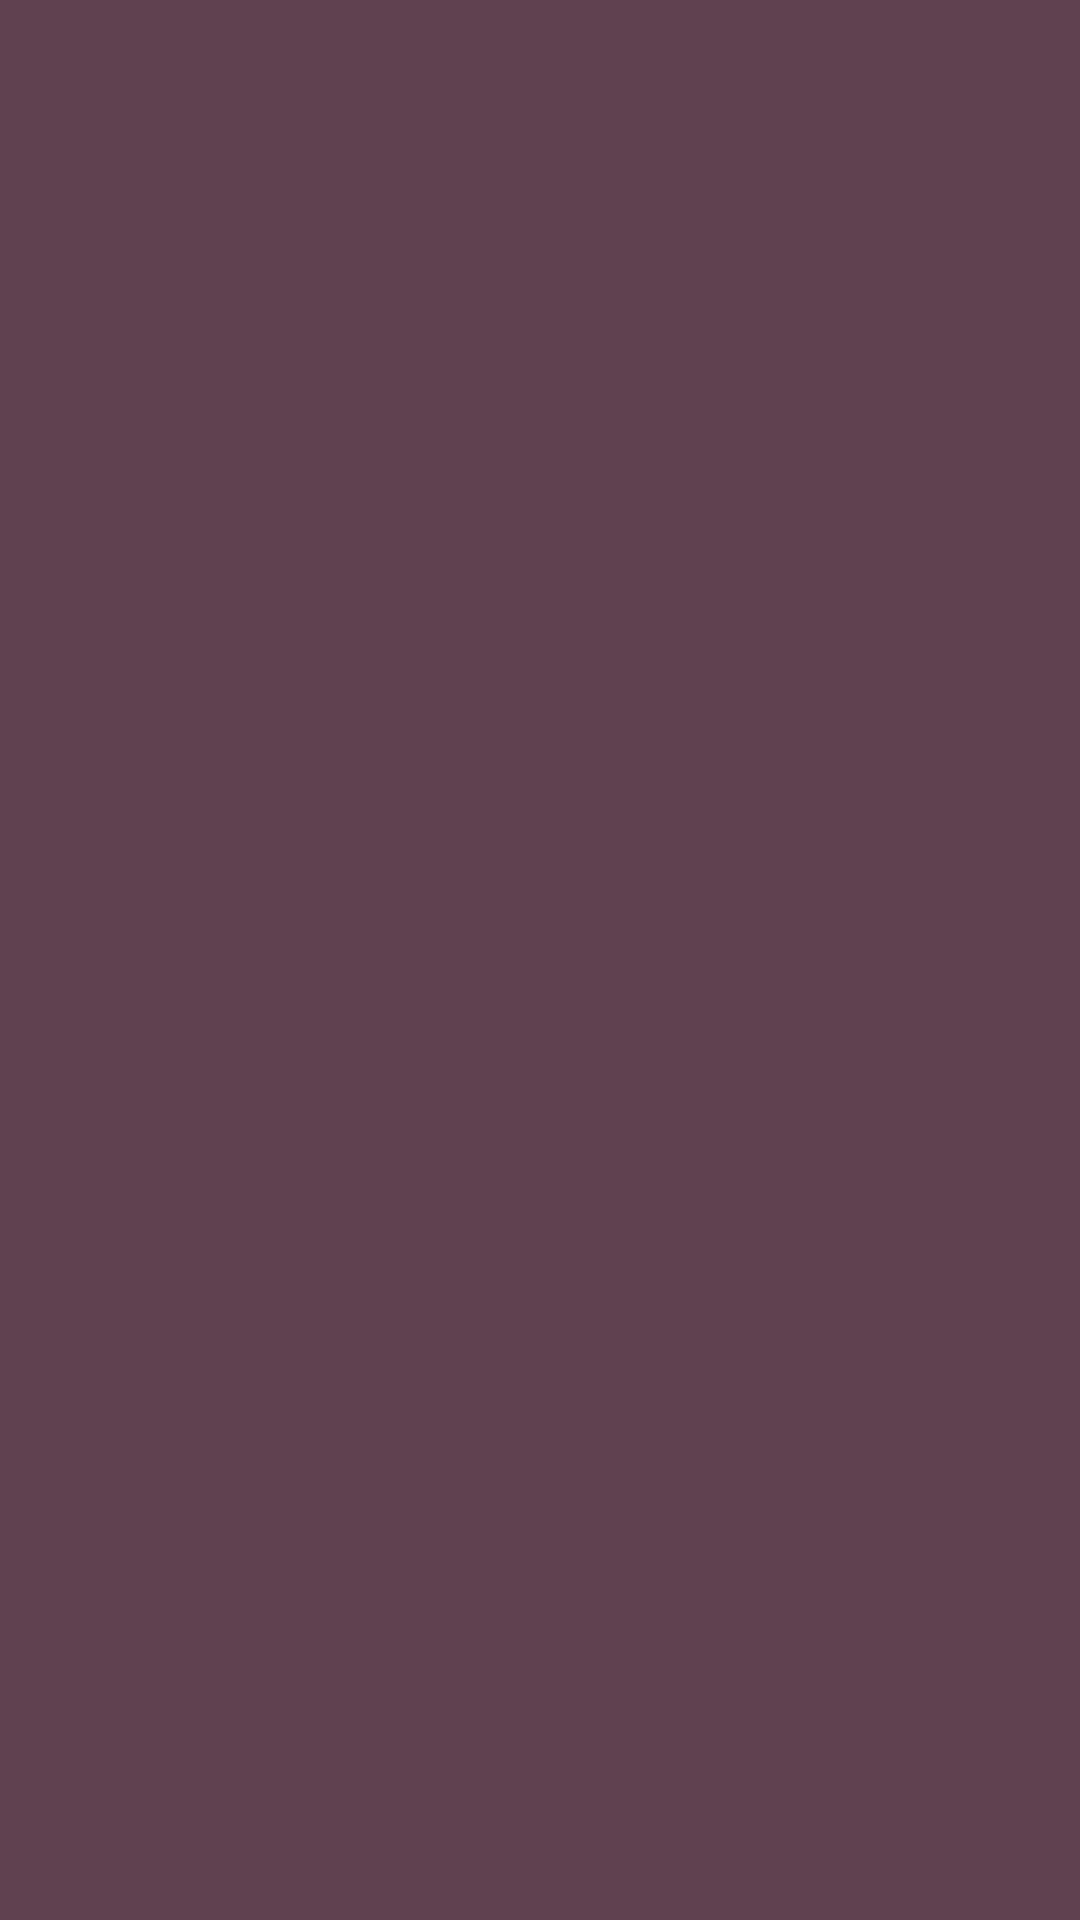 1080x1920 Eggplant Solid Color Background